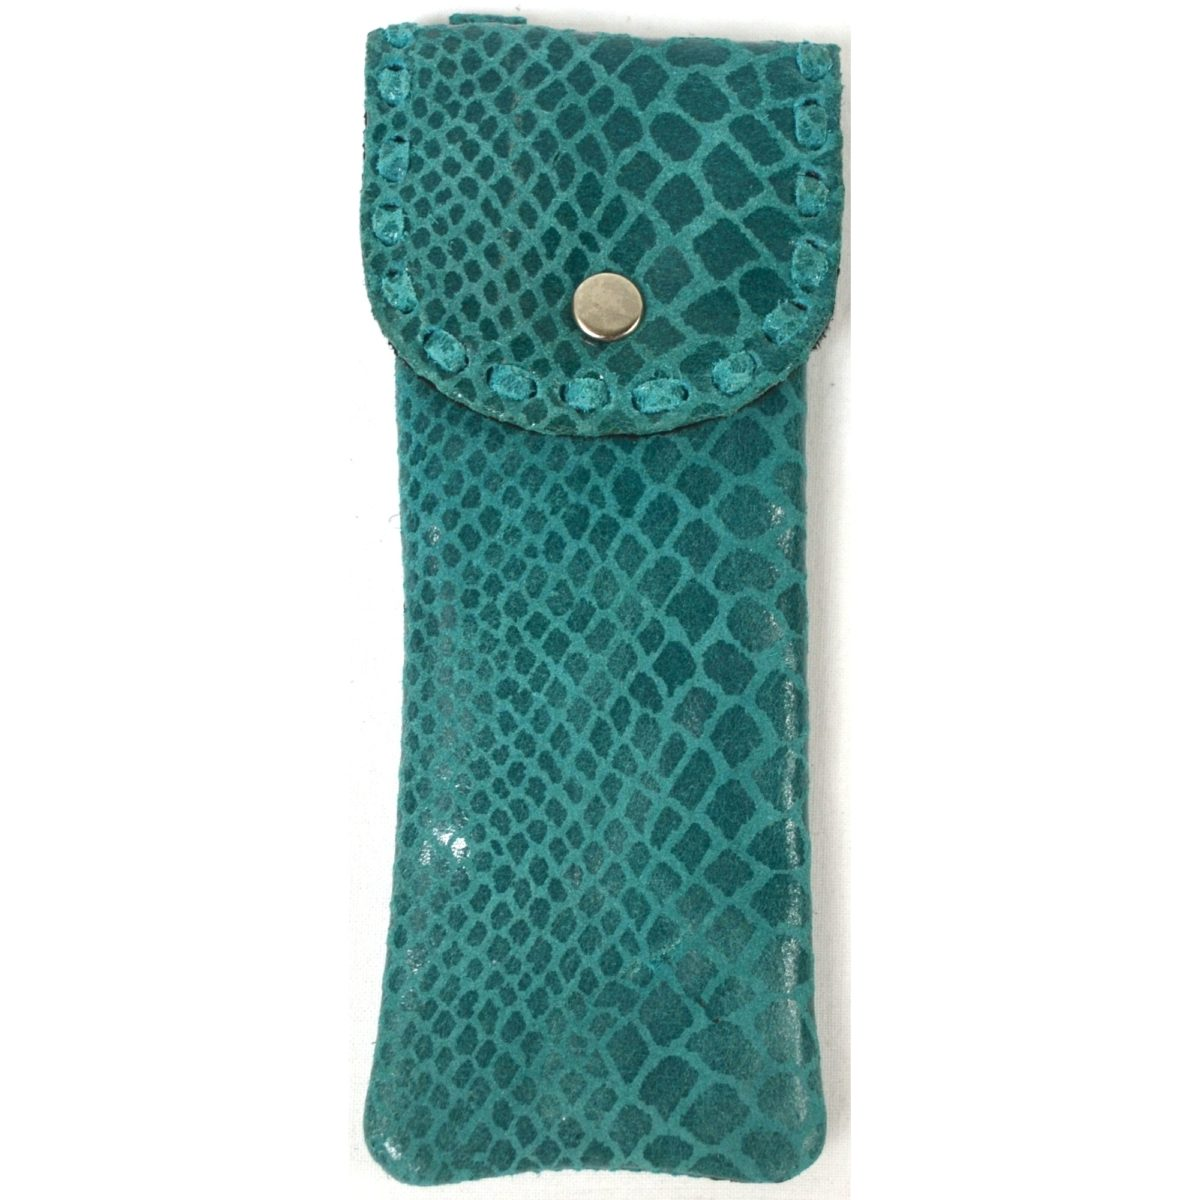 Mia - Ladies Leather Glasses Case - Green Snake Effect